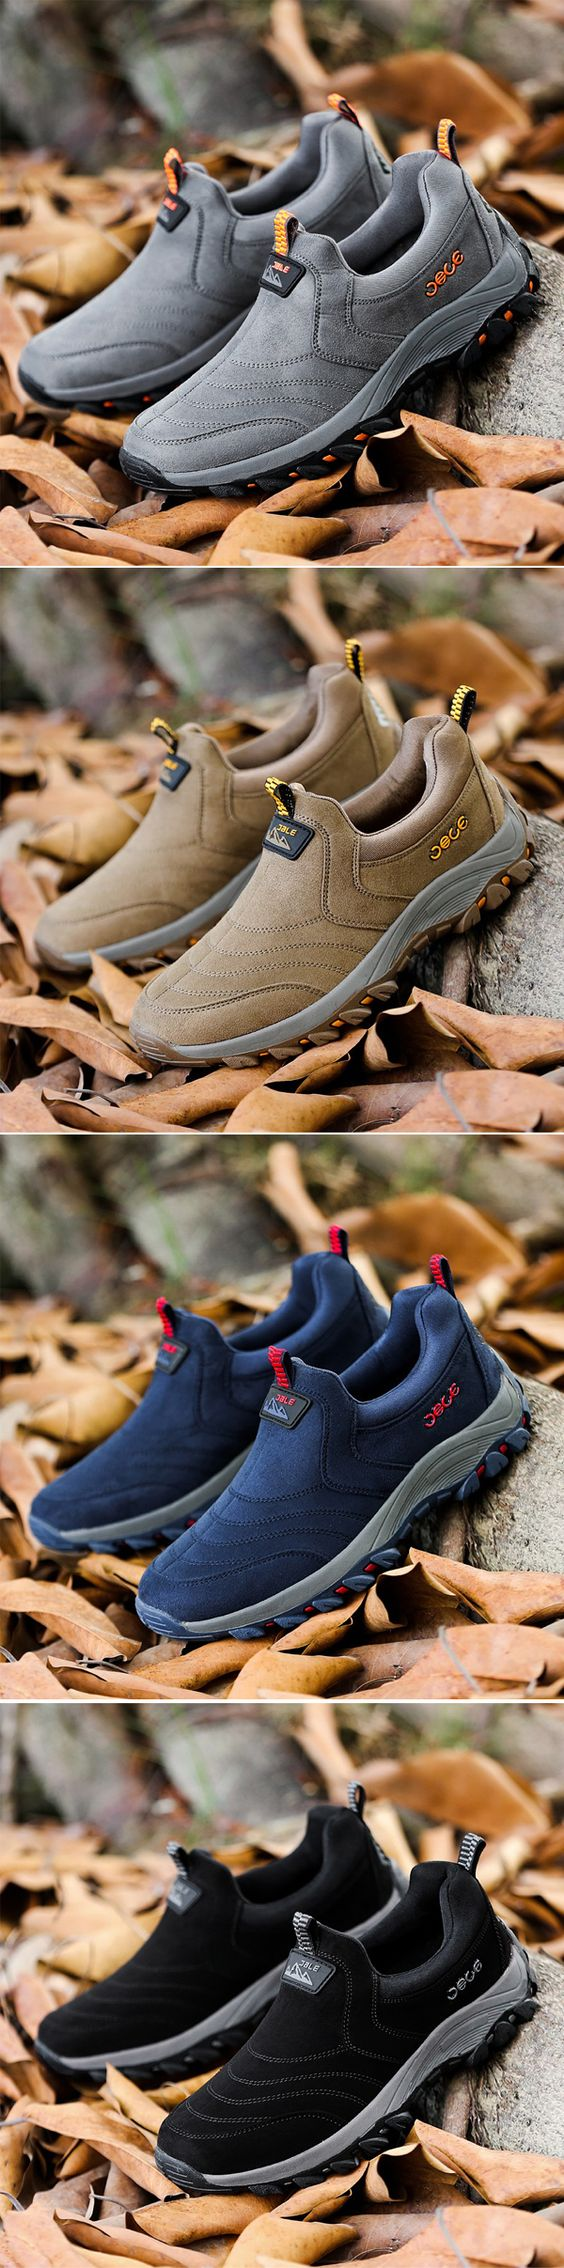 US35.33 Men Slip On Shock Absorption Non-slip Outdoor Hiking Casual Sneakers